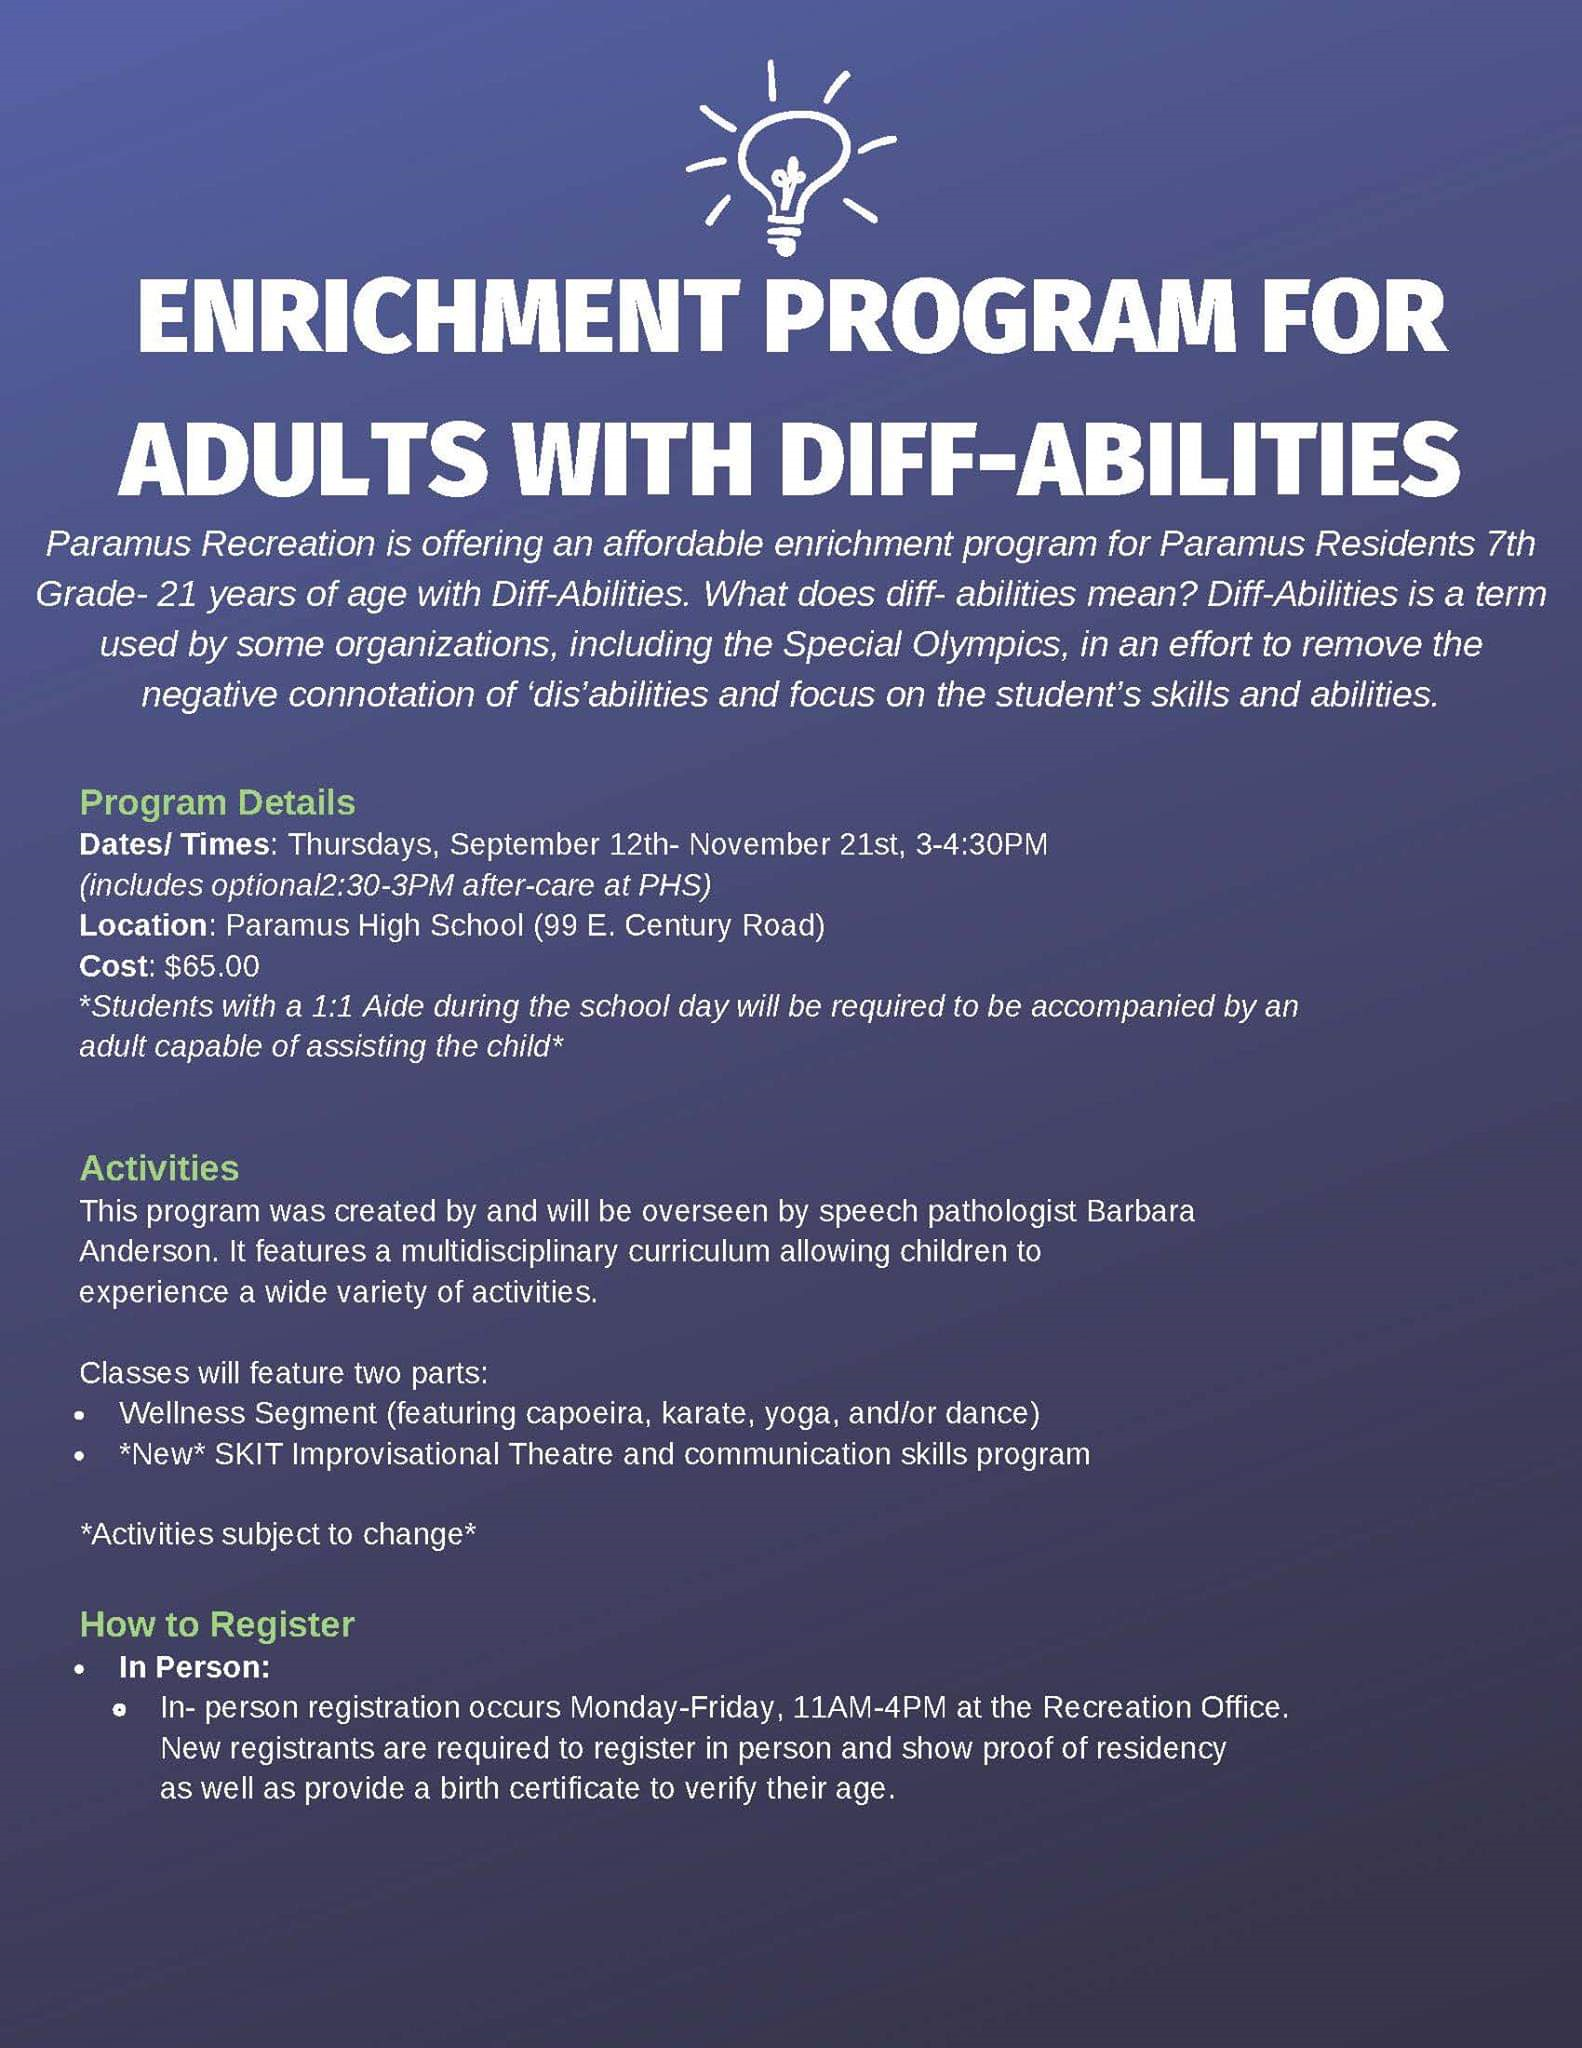 2019 Enrichment Program for Adults Diff-Abilities